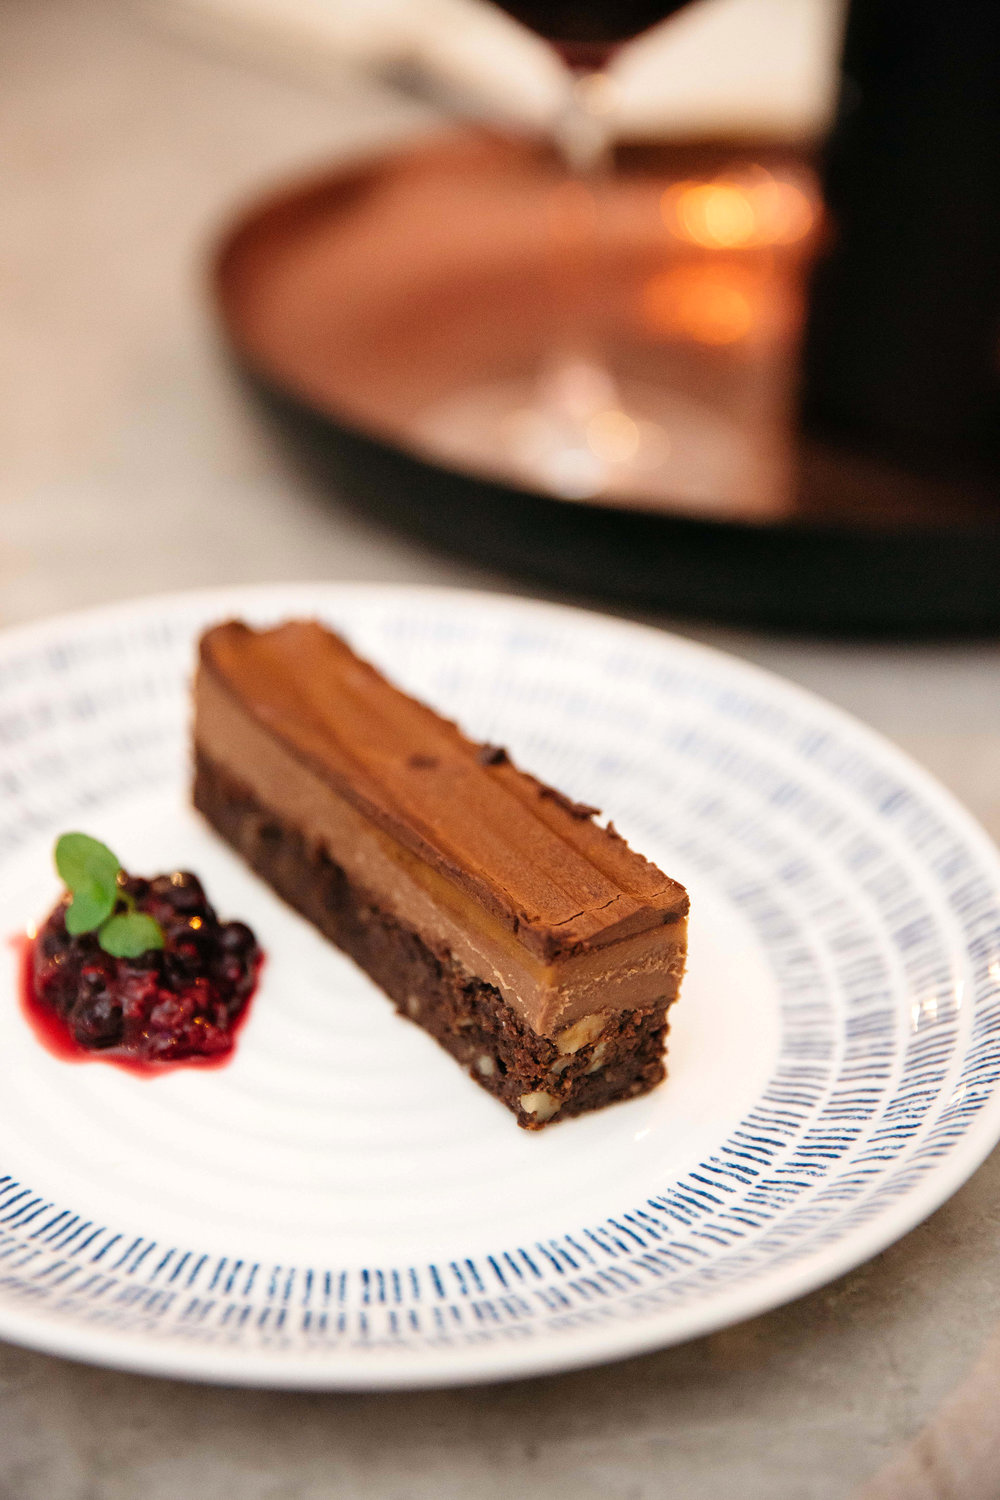 Chocolate dessert from Dine Delivered